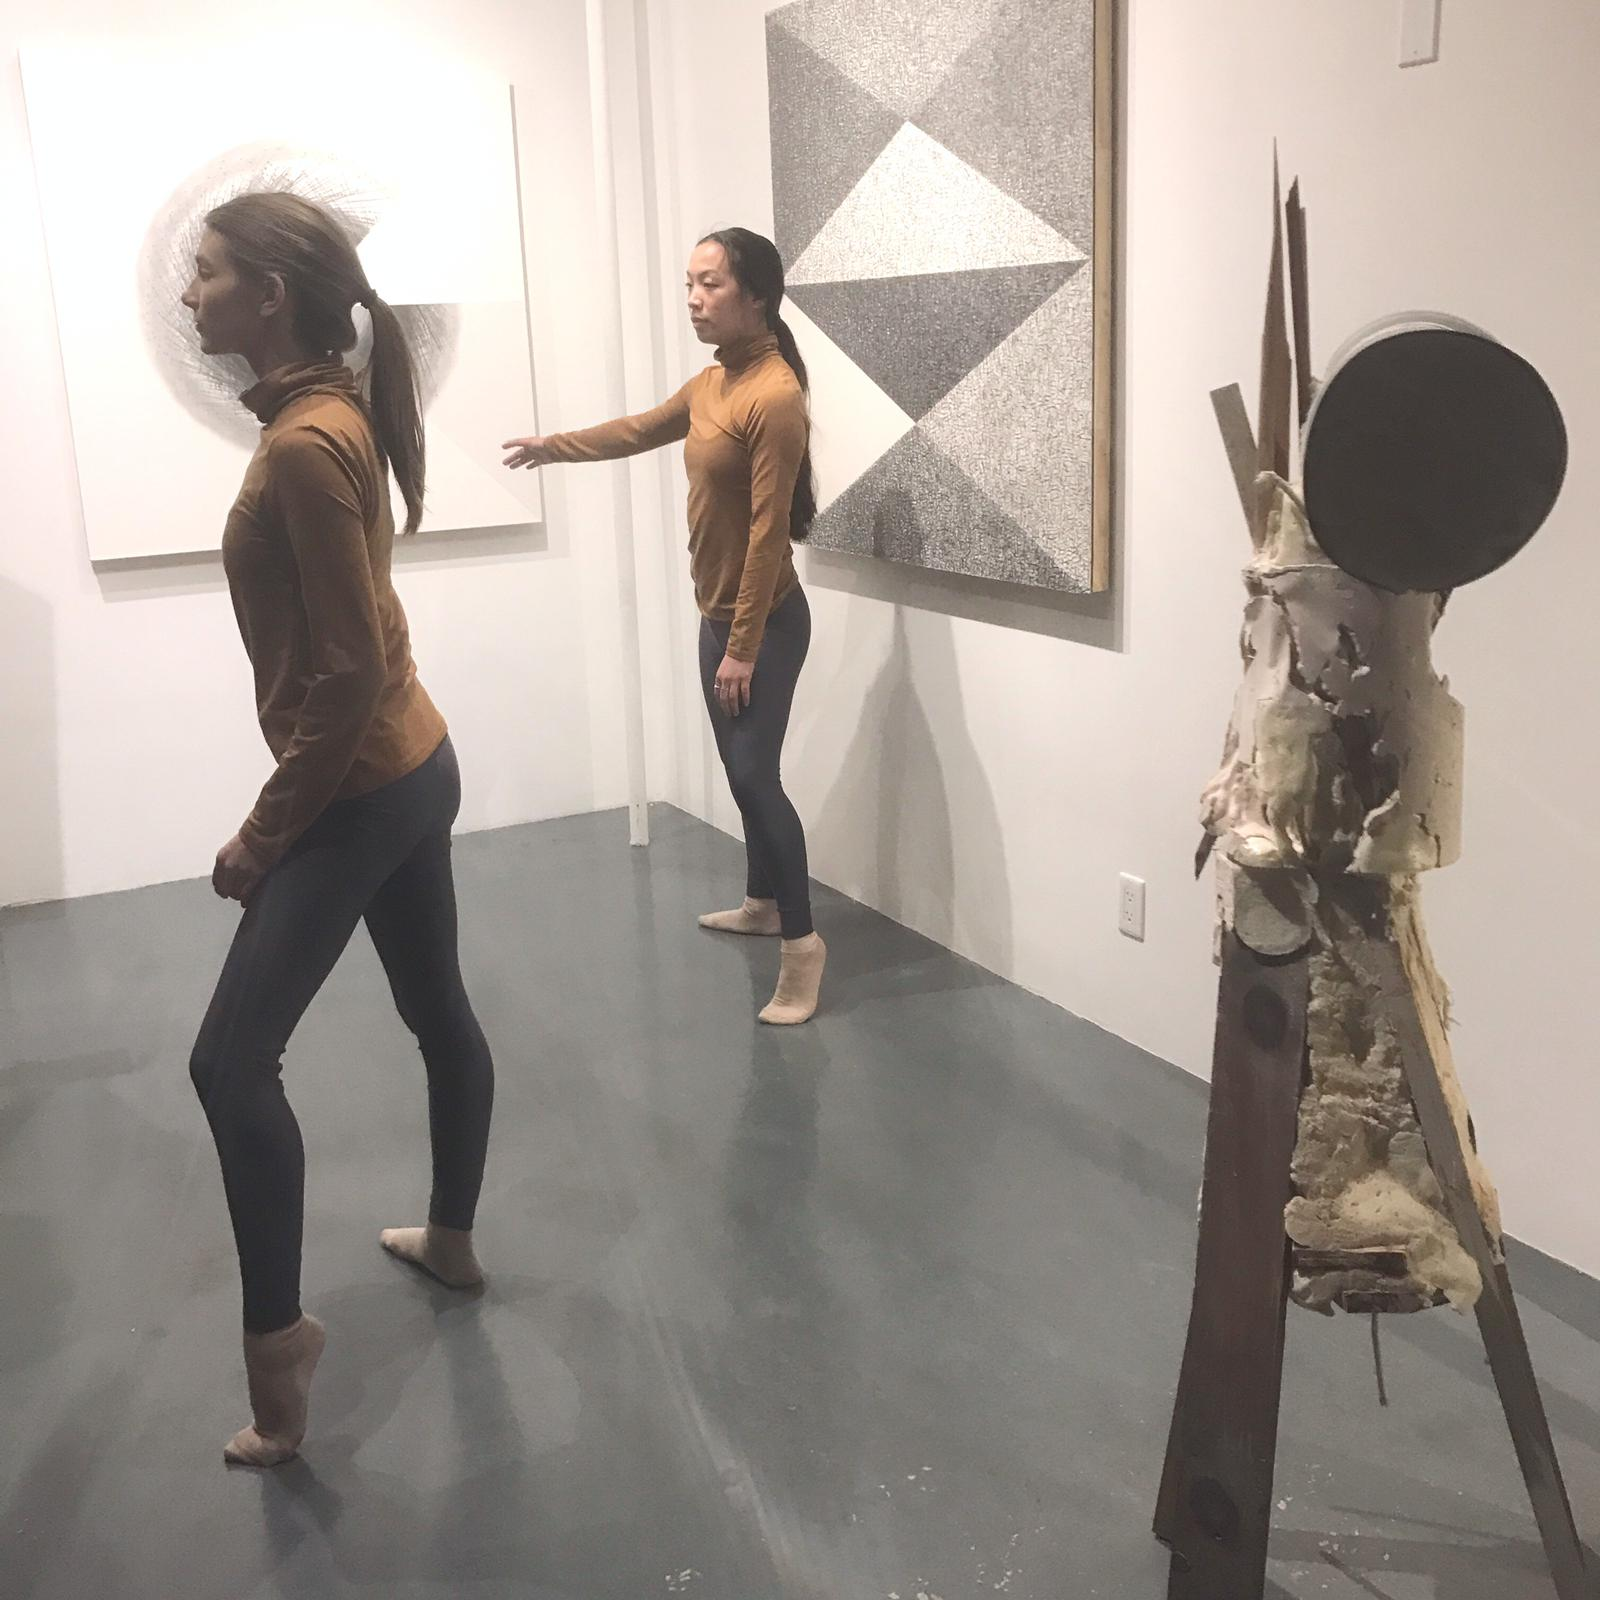 Tony Orrico,  expand / align: I want to be, more aw-ware nowww (lift),   performance at signs and symbols, January 25, 2019